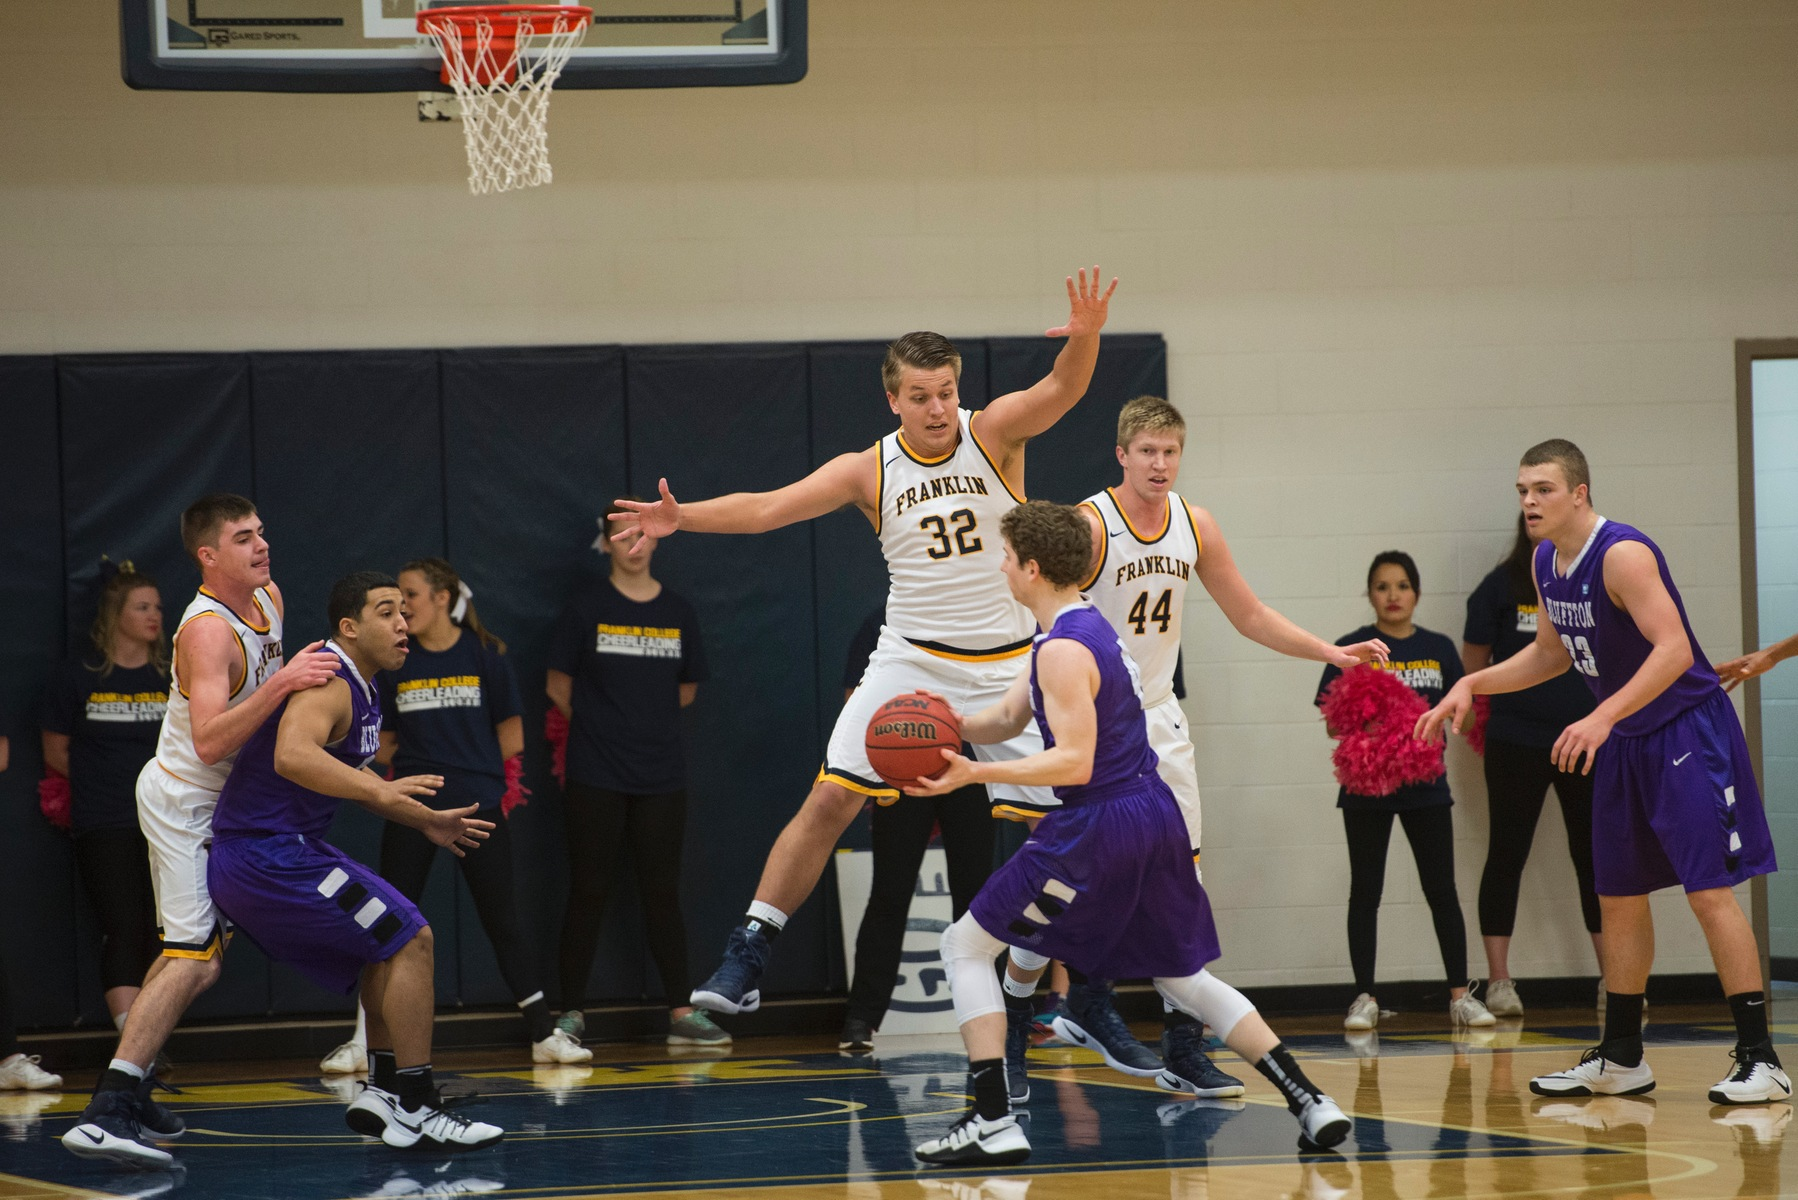 Men's Basketball Team Travels to Bluffton On Monday